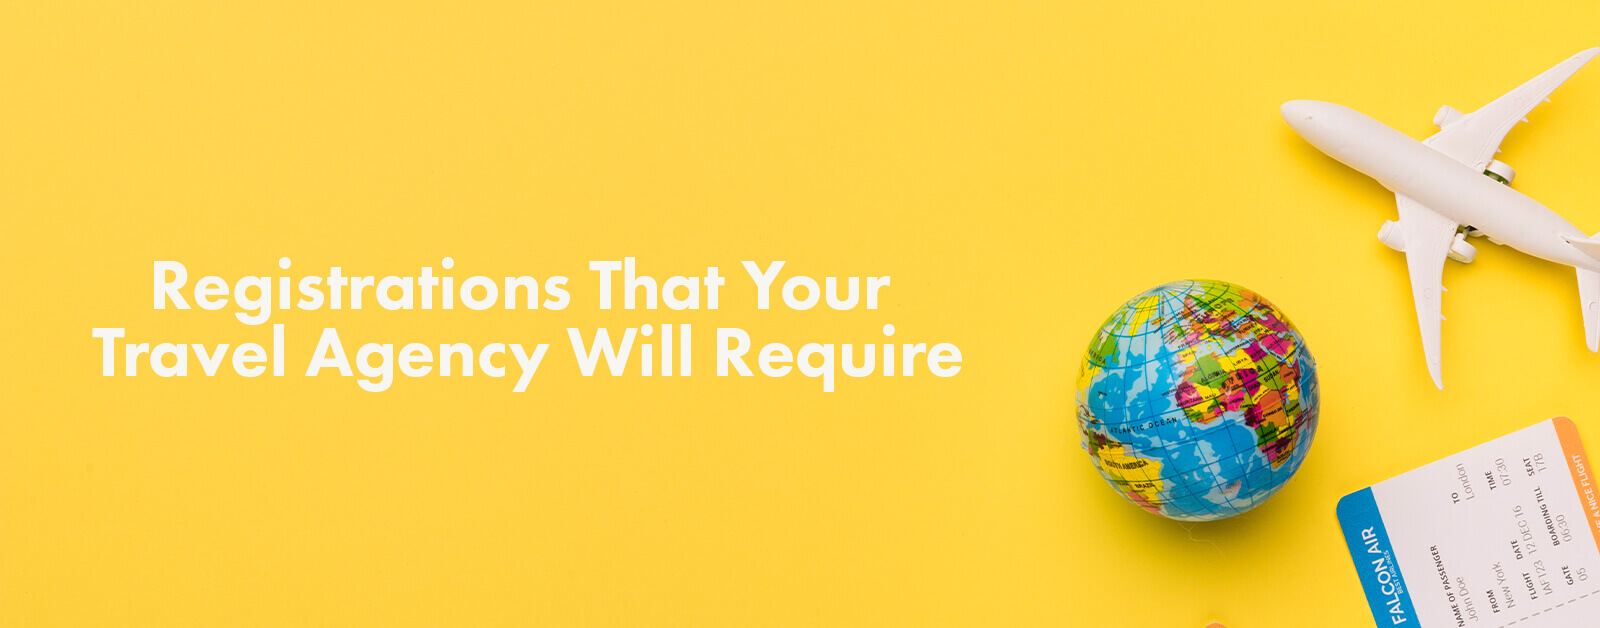 Registrations That Your Travel Agency Will Require